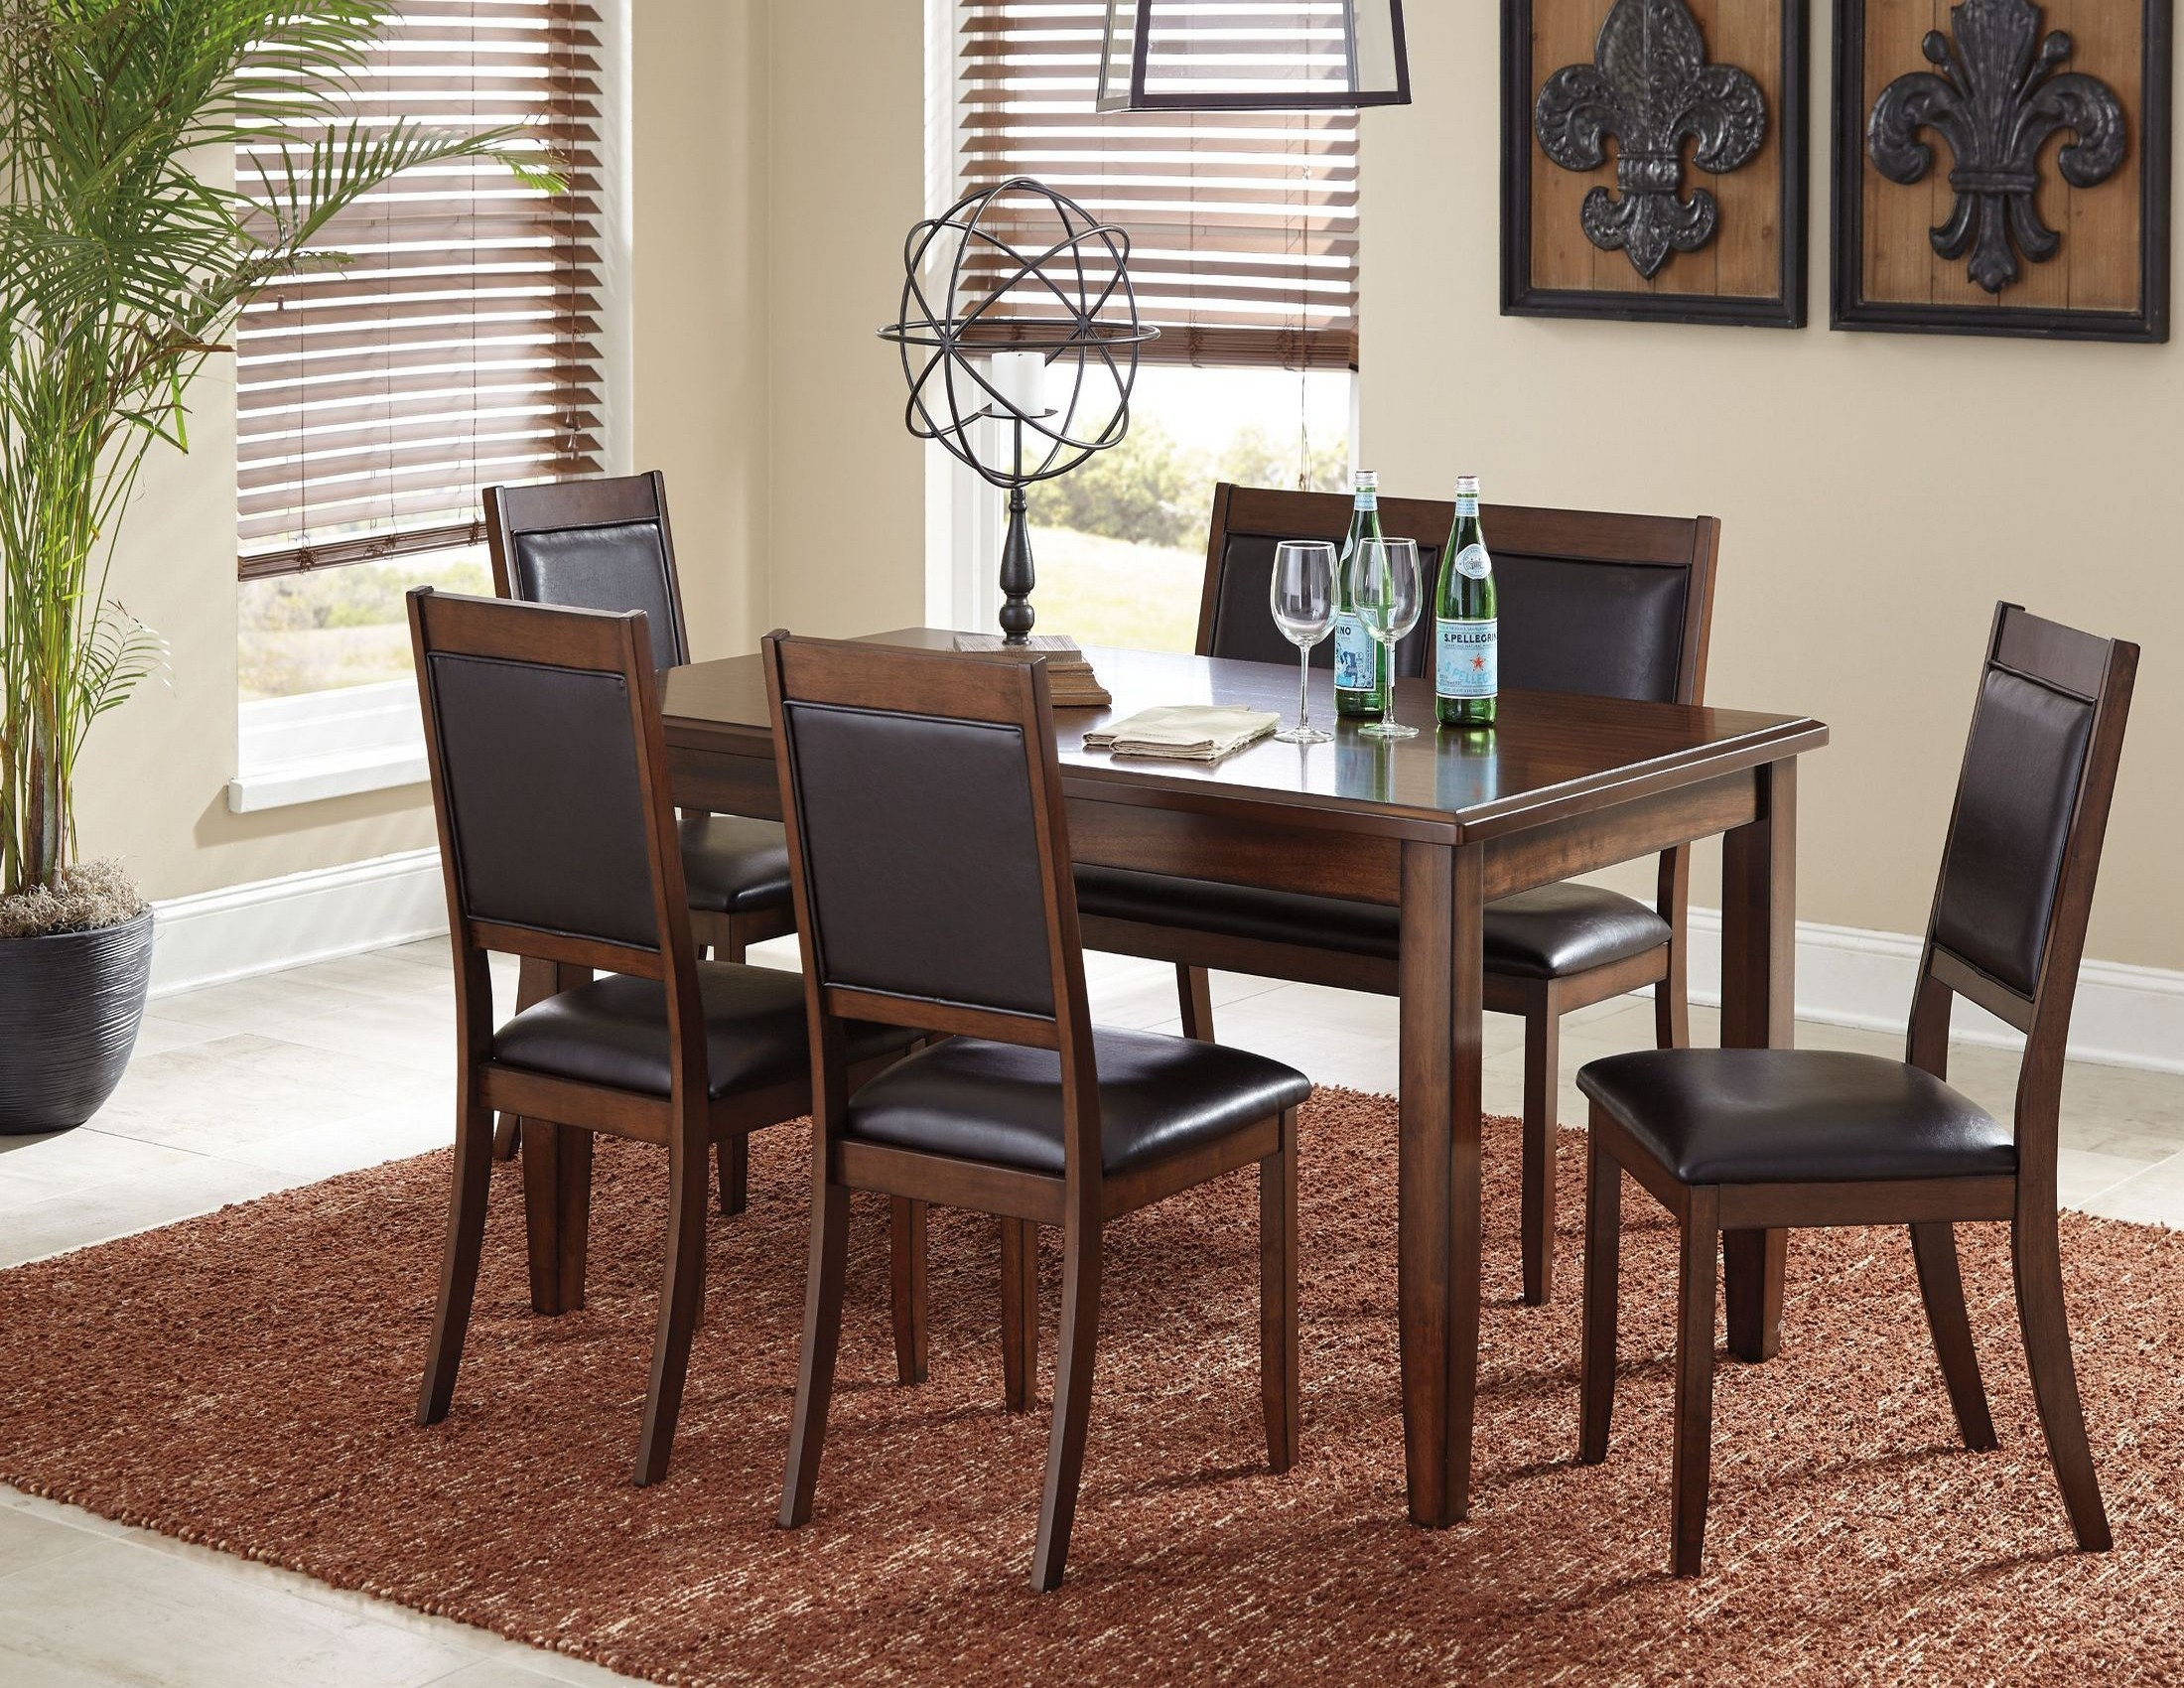 Meredy brown 6 piece dining room set from ashley coleman for Dining room sets 6 piece